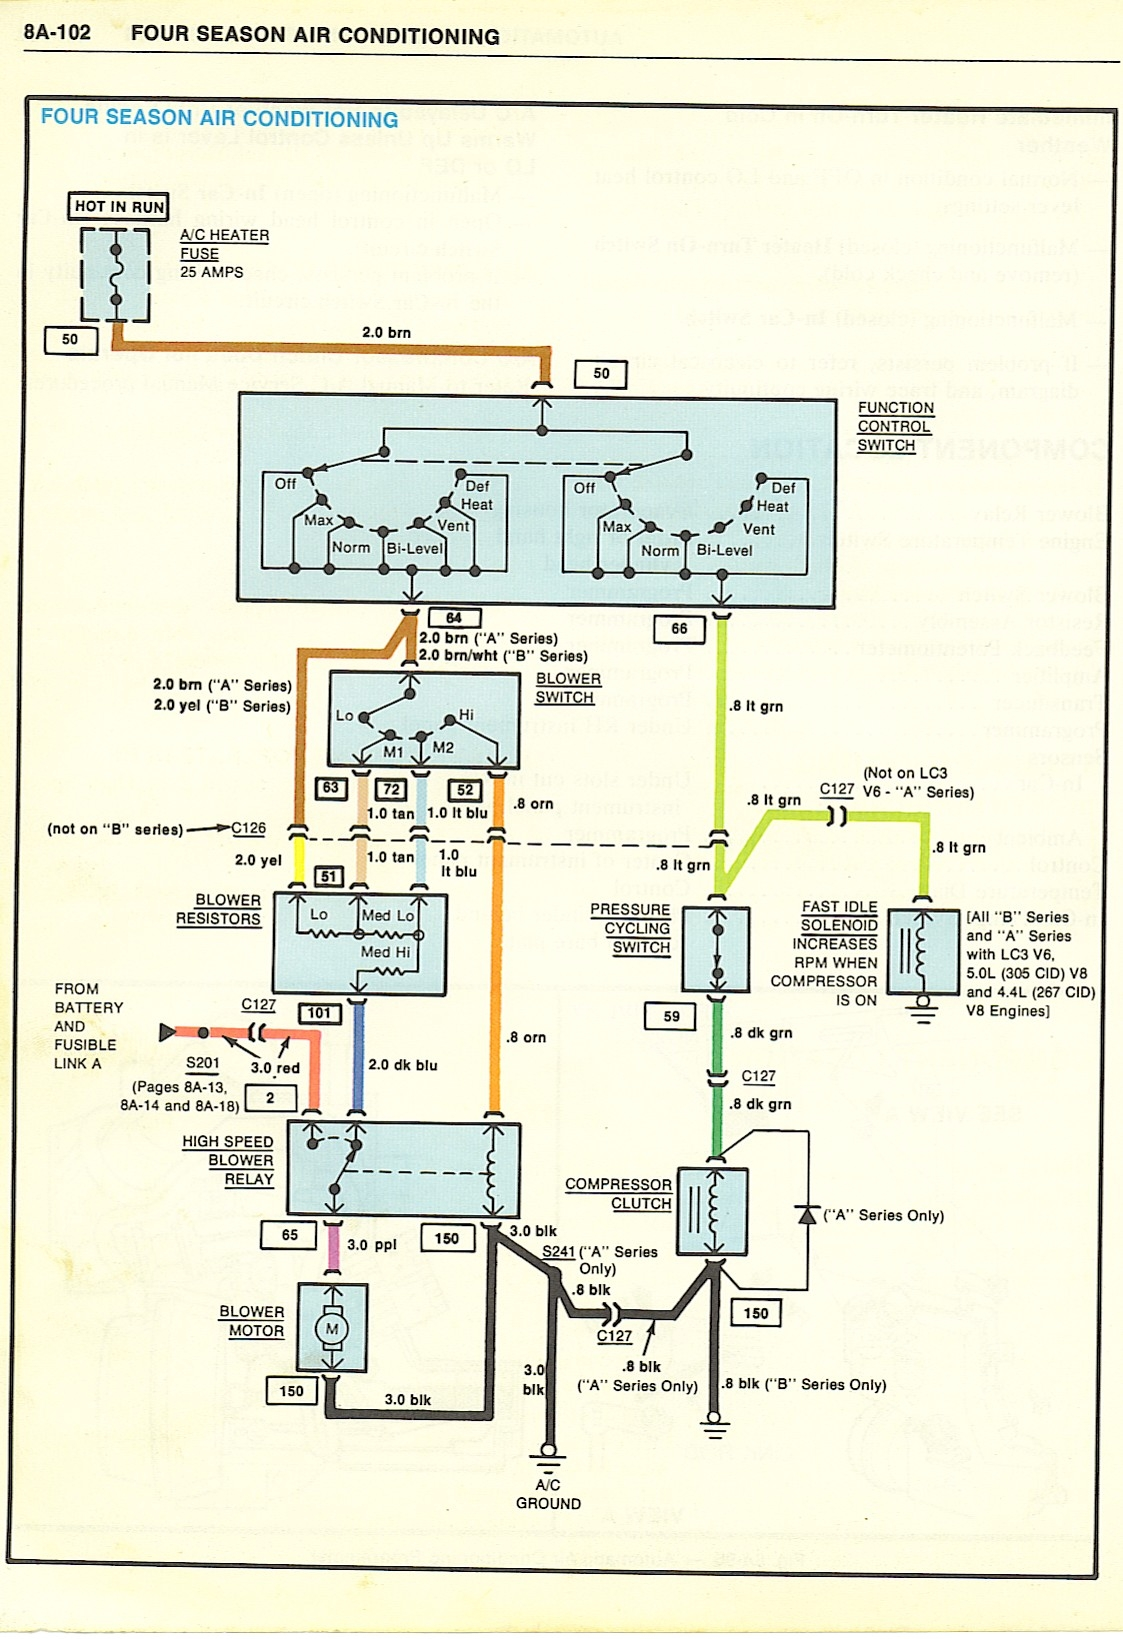 Chevy Diagrams 1965 Chevrolet Wiring Diagram Schematic Harness 1968 Camero A C Drawing